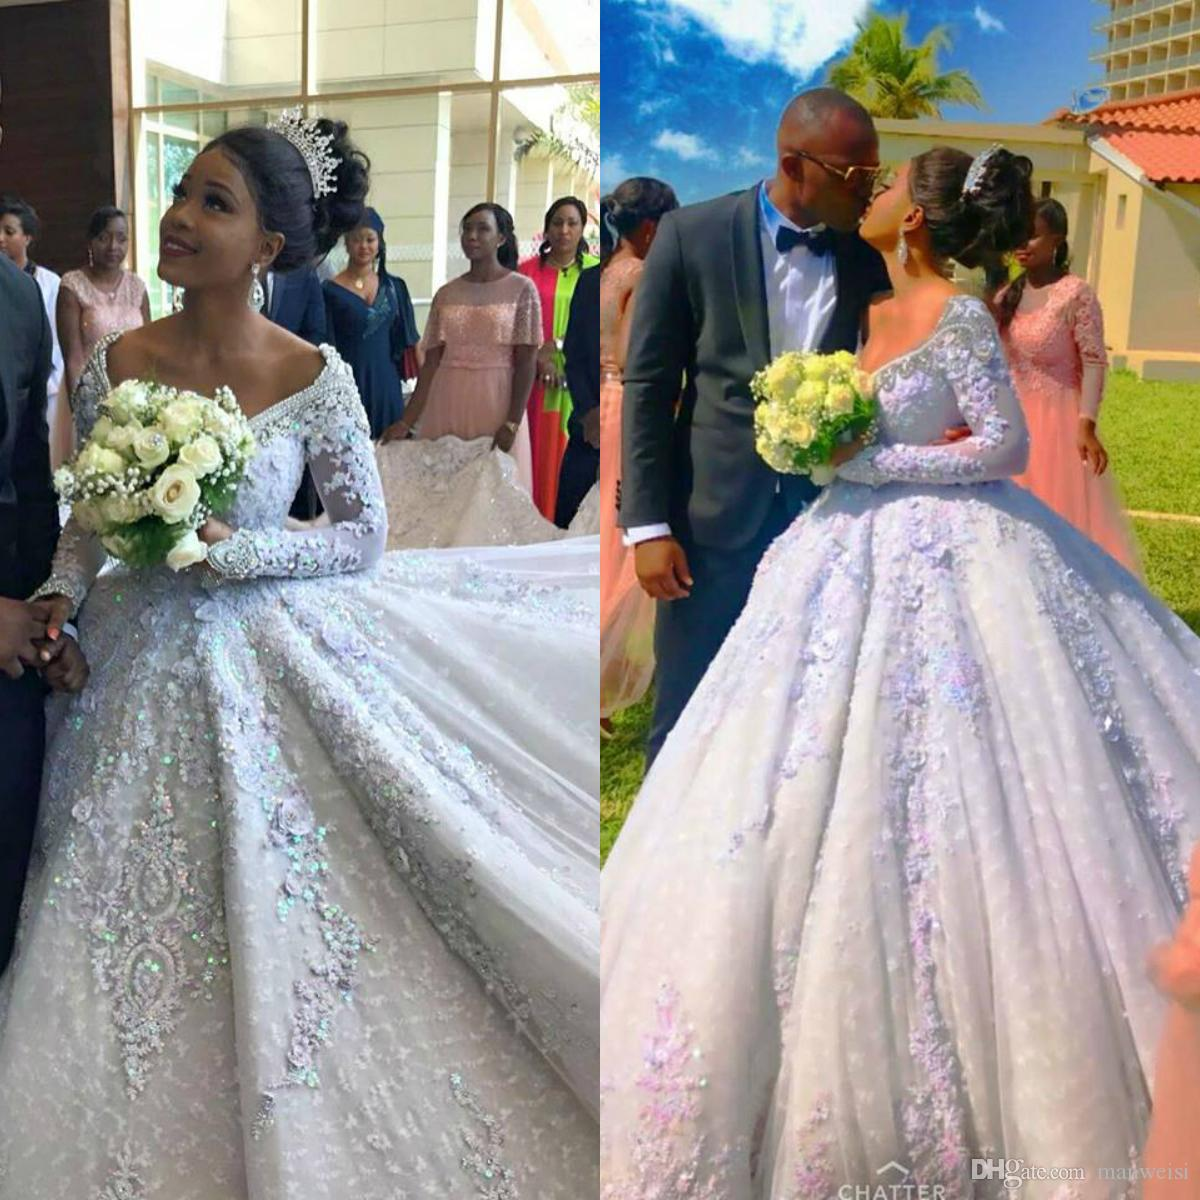 Saudi Arab Design Asymmetrical Wedding Dresses Scoop: Sparkly Lace Ball Gown Wedding Dresses 2019 New Style